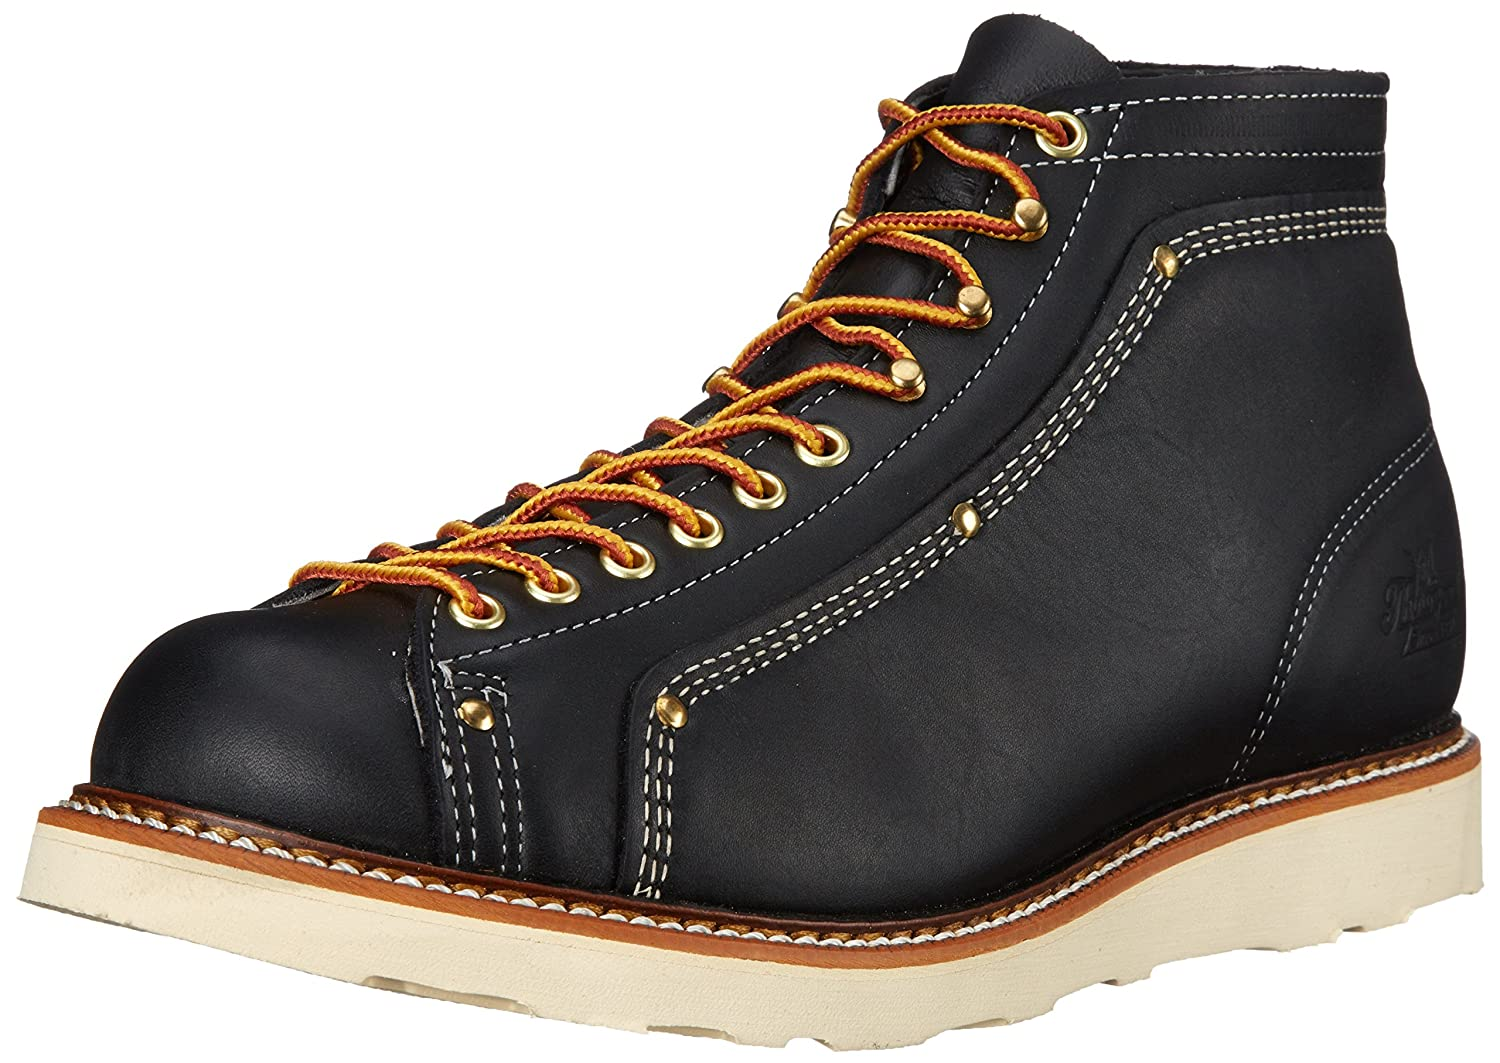 50dabb9b764 Thorogood Mens 814-6233 Lace-To-Toe Roofer Black Leather Boots 8 UK ...